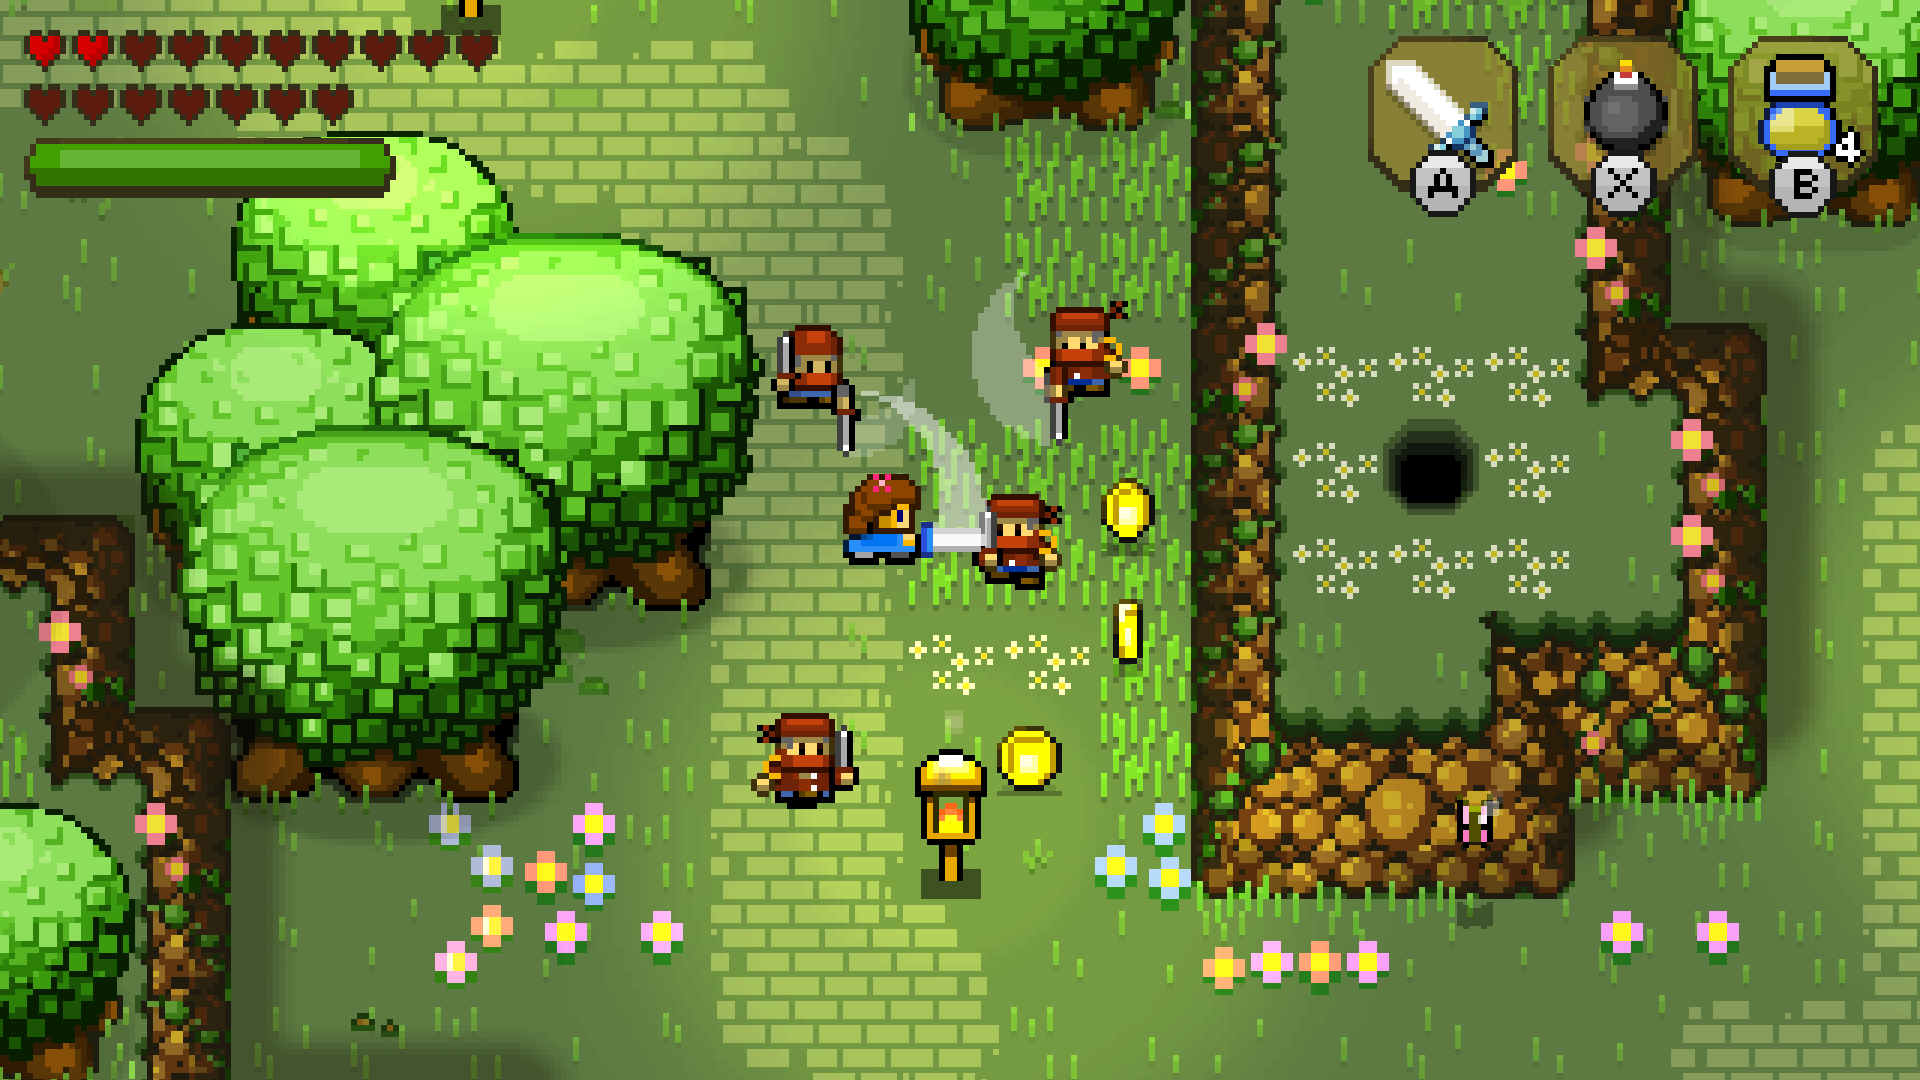 http://press.fdg-entertainment.com/blossom_tales/images/BlossomTales_SwitchScreenshots4.png